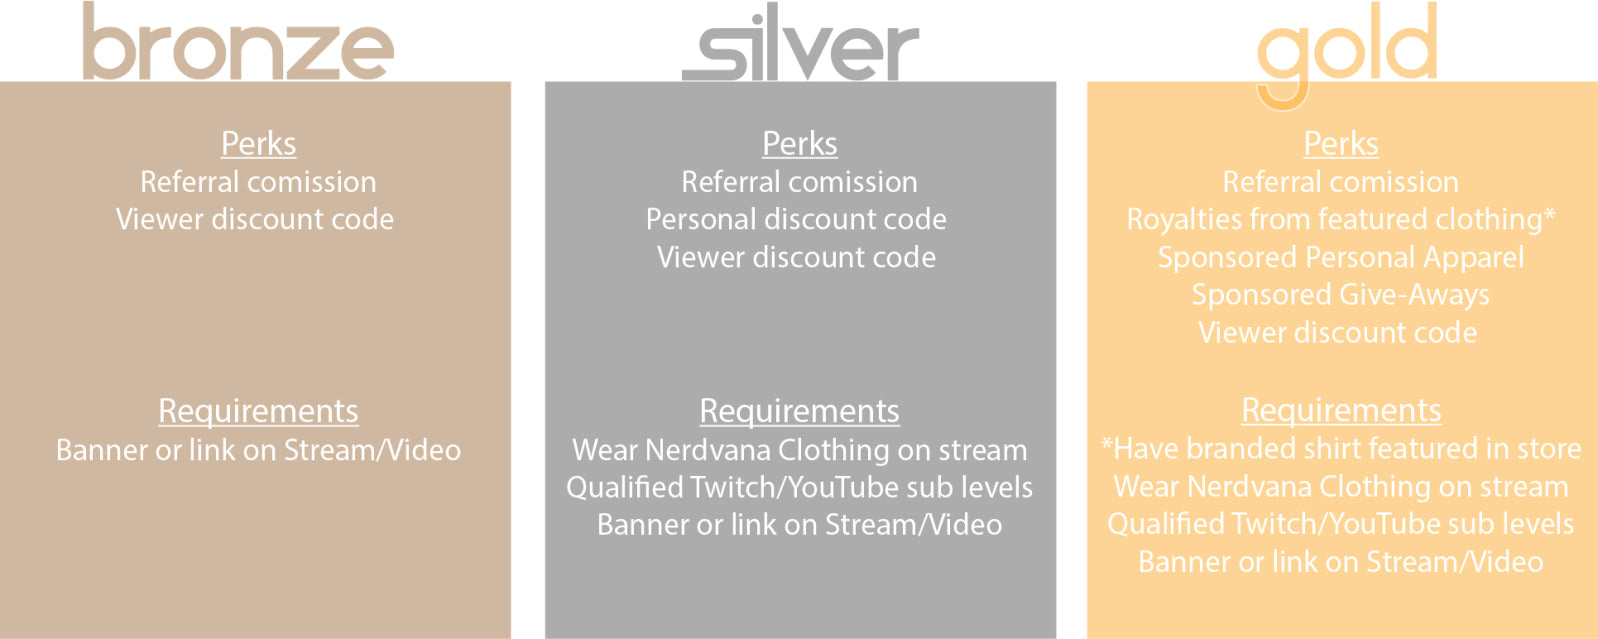 bronze: perks, referral comission. viewer discount code. silver: perks, referral comission, personal discount code. viewer discount code. Requirements, Wear Nerdvana Clothing on stream. Qualified Twitch or Youtube subscription levels.